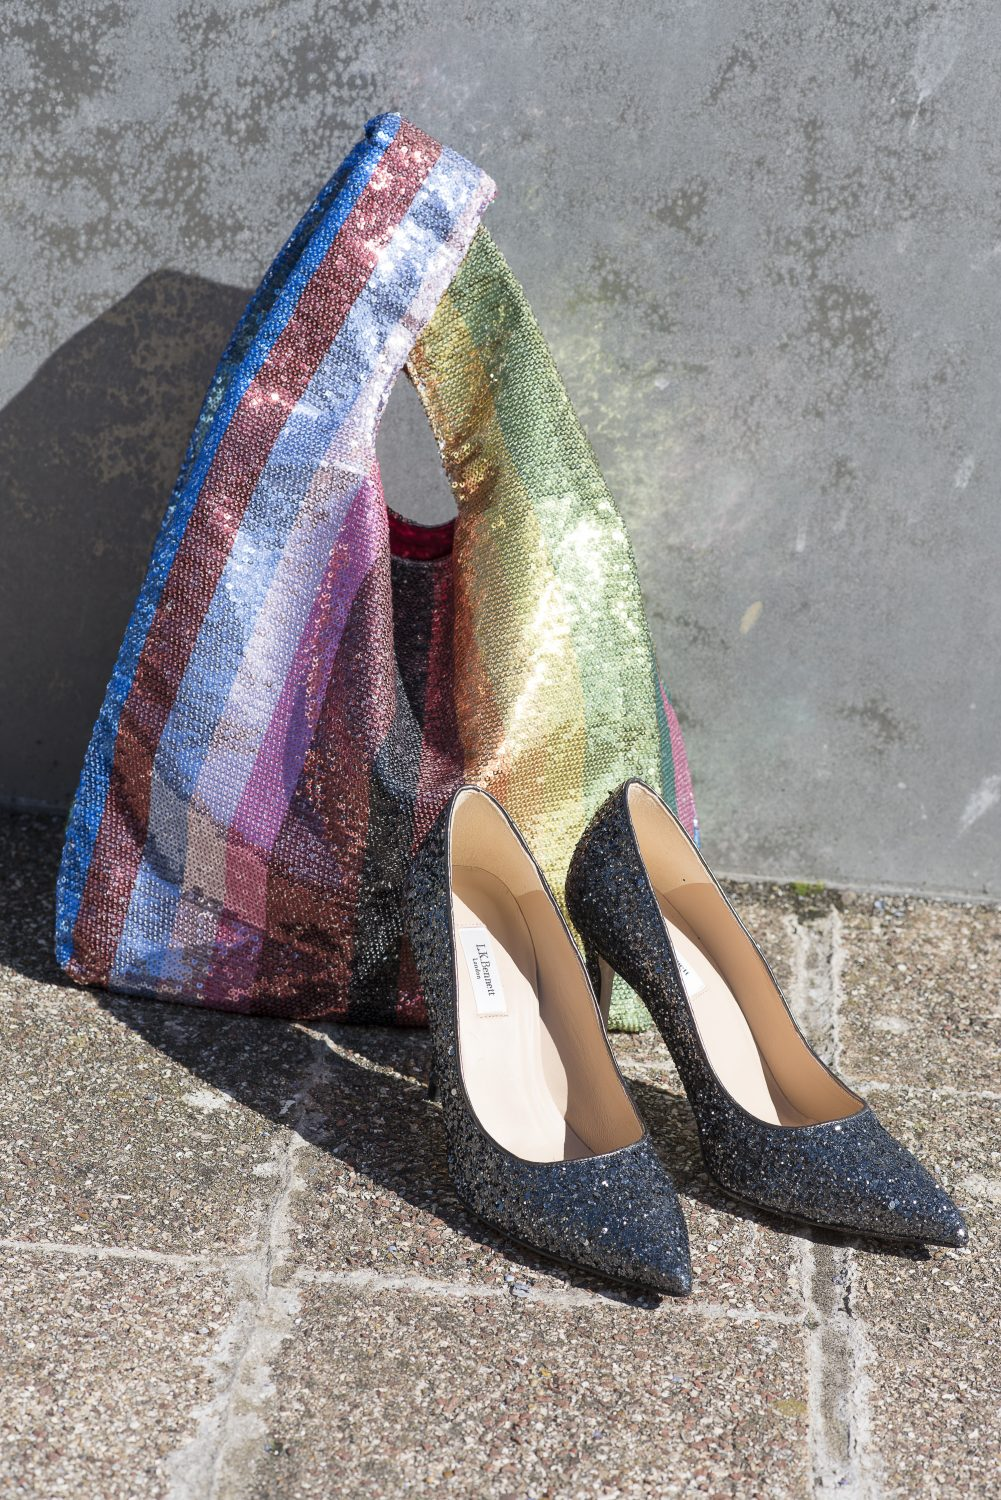 Sequin rainbow tote £55, SWYC saywhatyouc.com #saywhatyouc; glitter court shoes £195, L.K.Bennett Bluewater 01322 427178 lkbennett.com